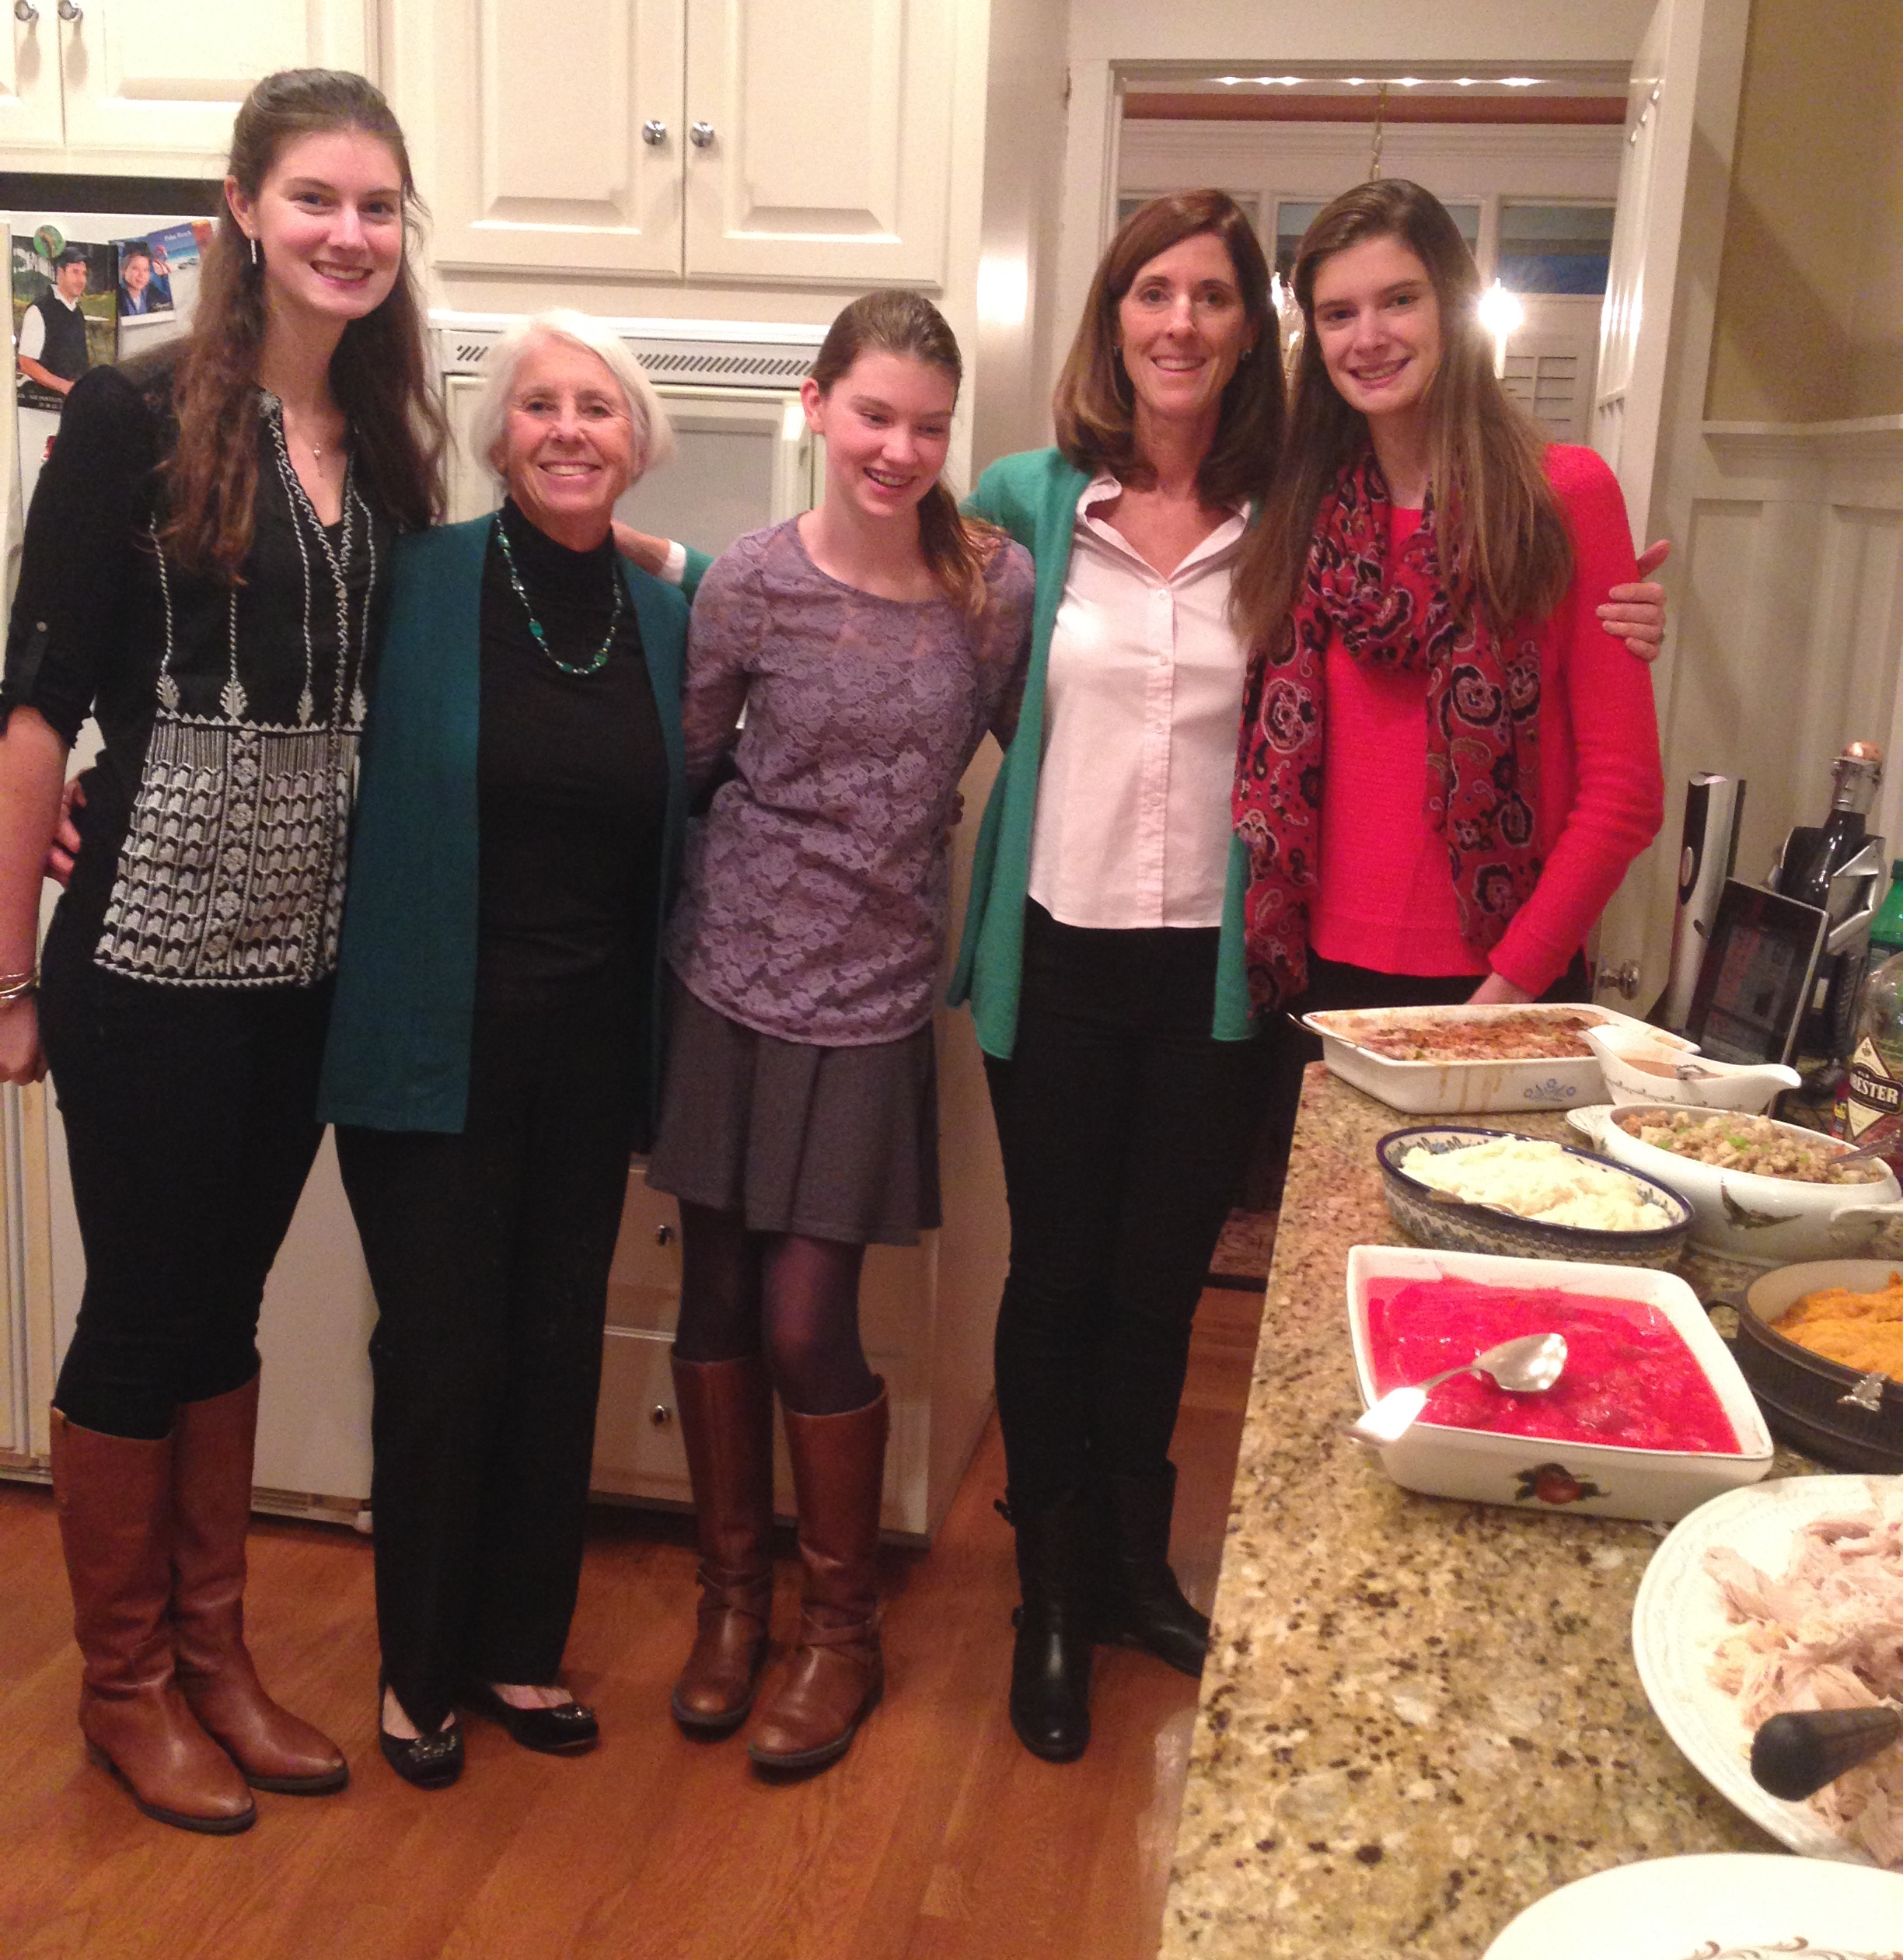 Three generations of vintage cooks! Gail Becker, at home in the kitchen with her mother and three daughters.